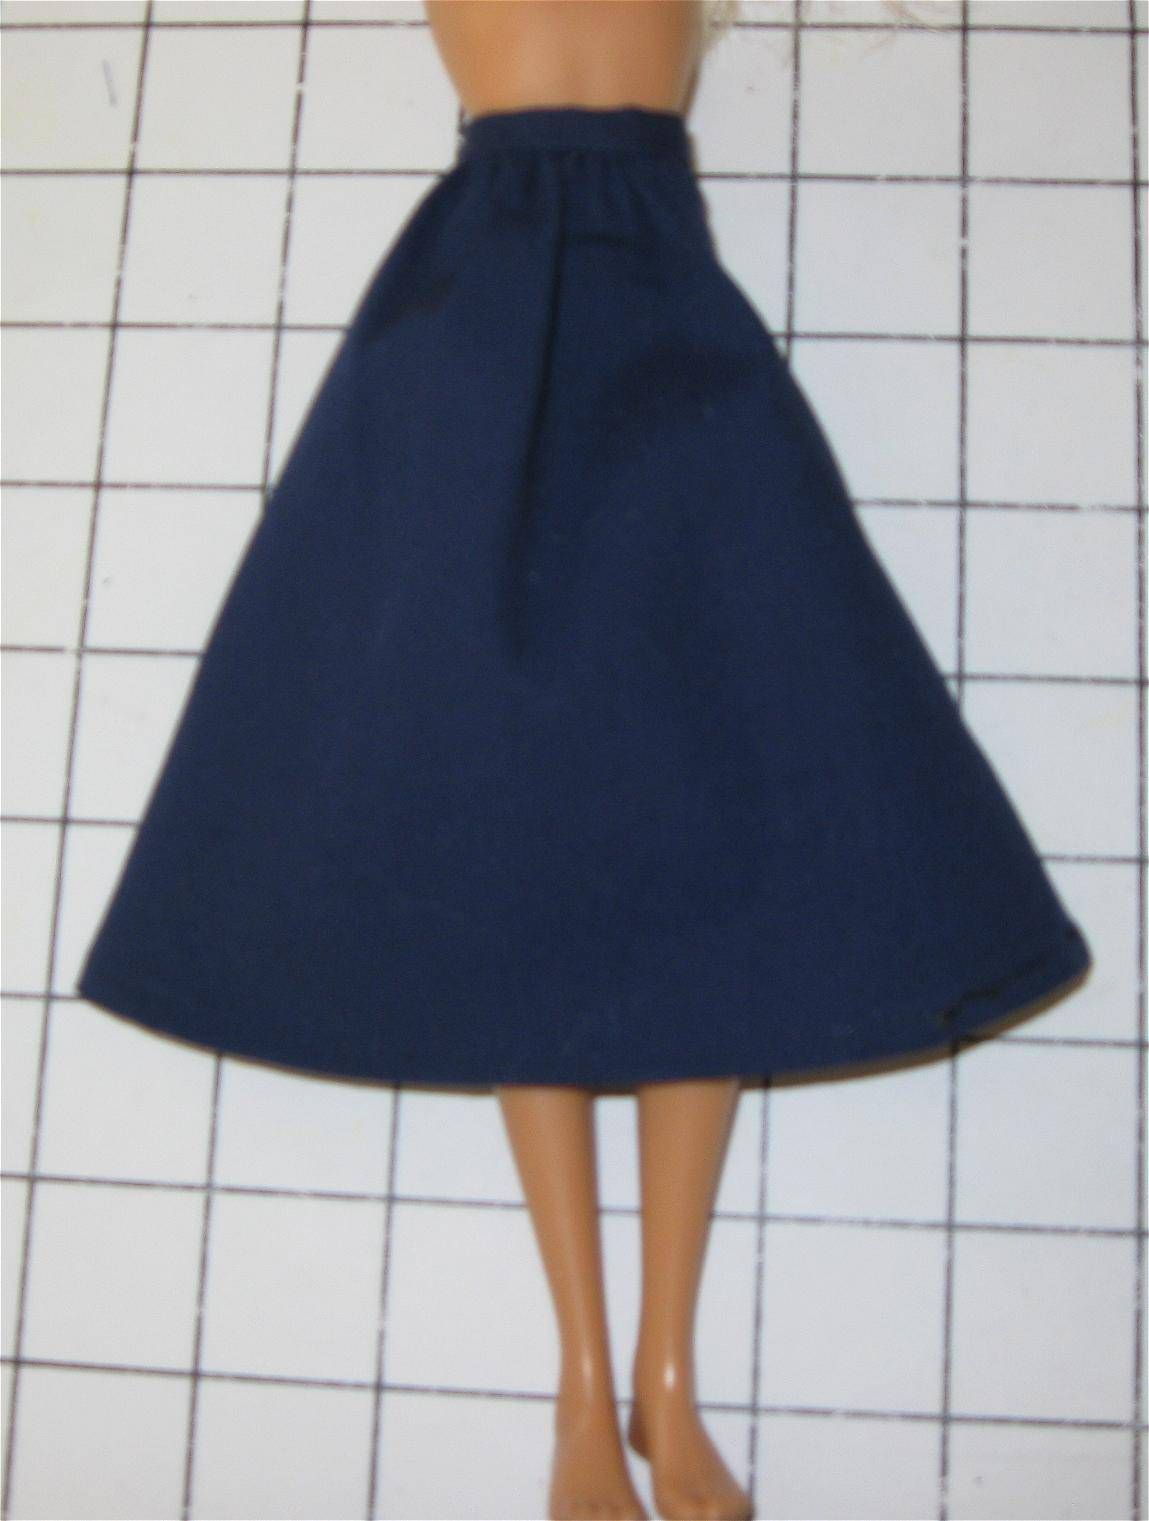 Sew a Classic Doll Skirt With This Free Pattern | Pinterest ...